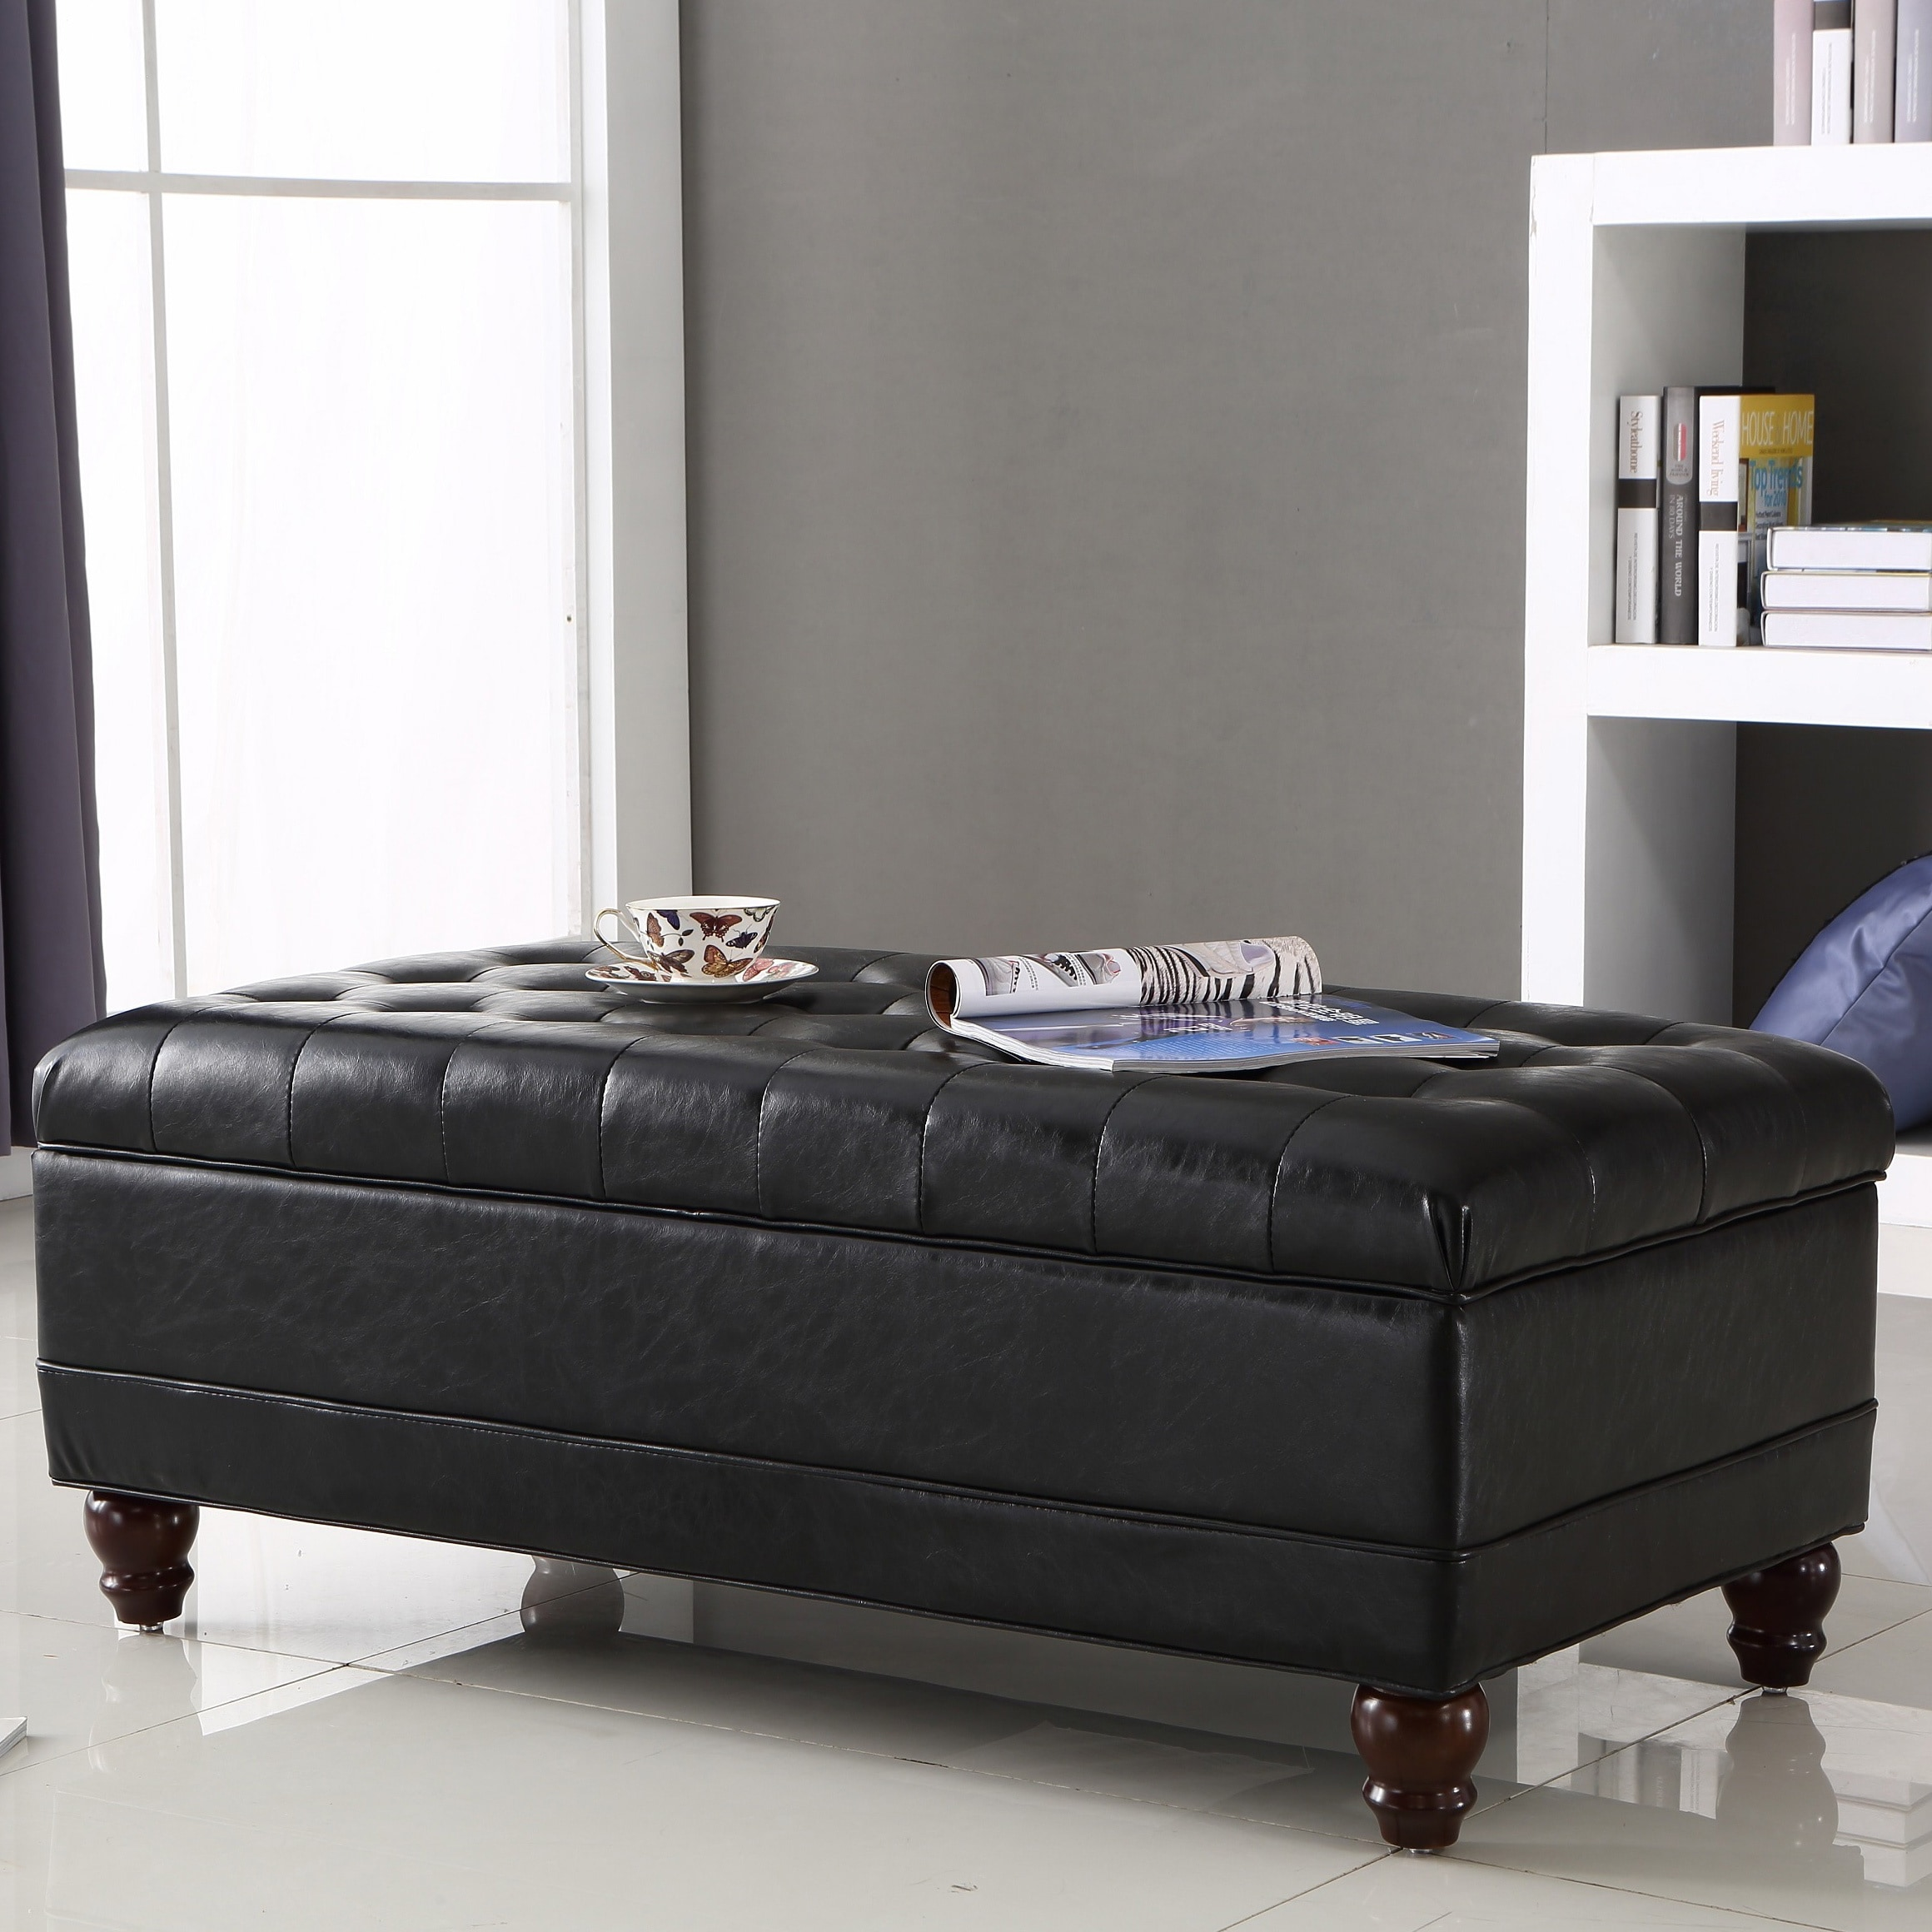 Incredible Luxury Comfort Collection Black Tufted Storage Bench Ottoman Onthecornerstone Fun Painted Chair Ideas Images Onthecornerstoneorg